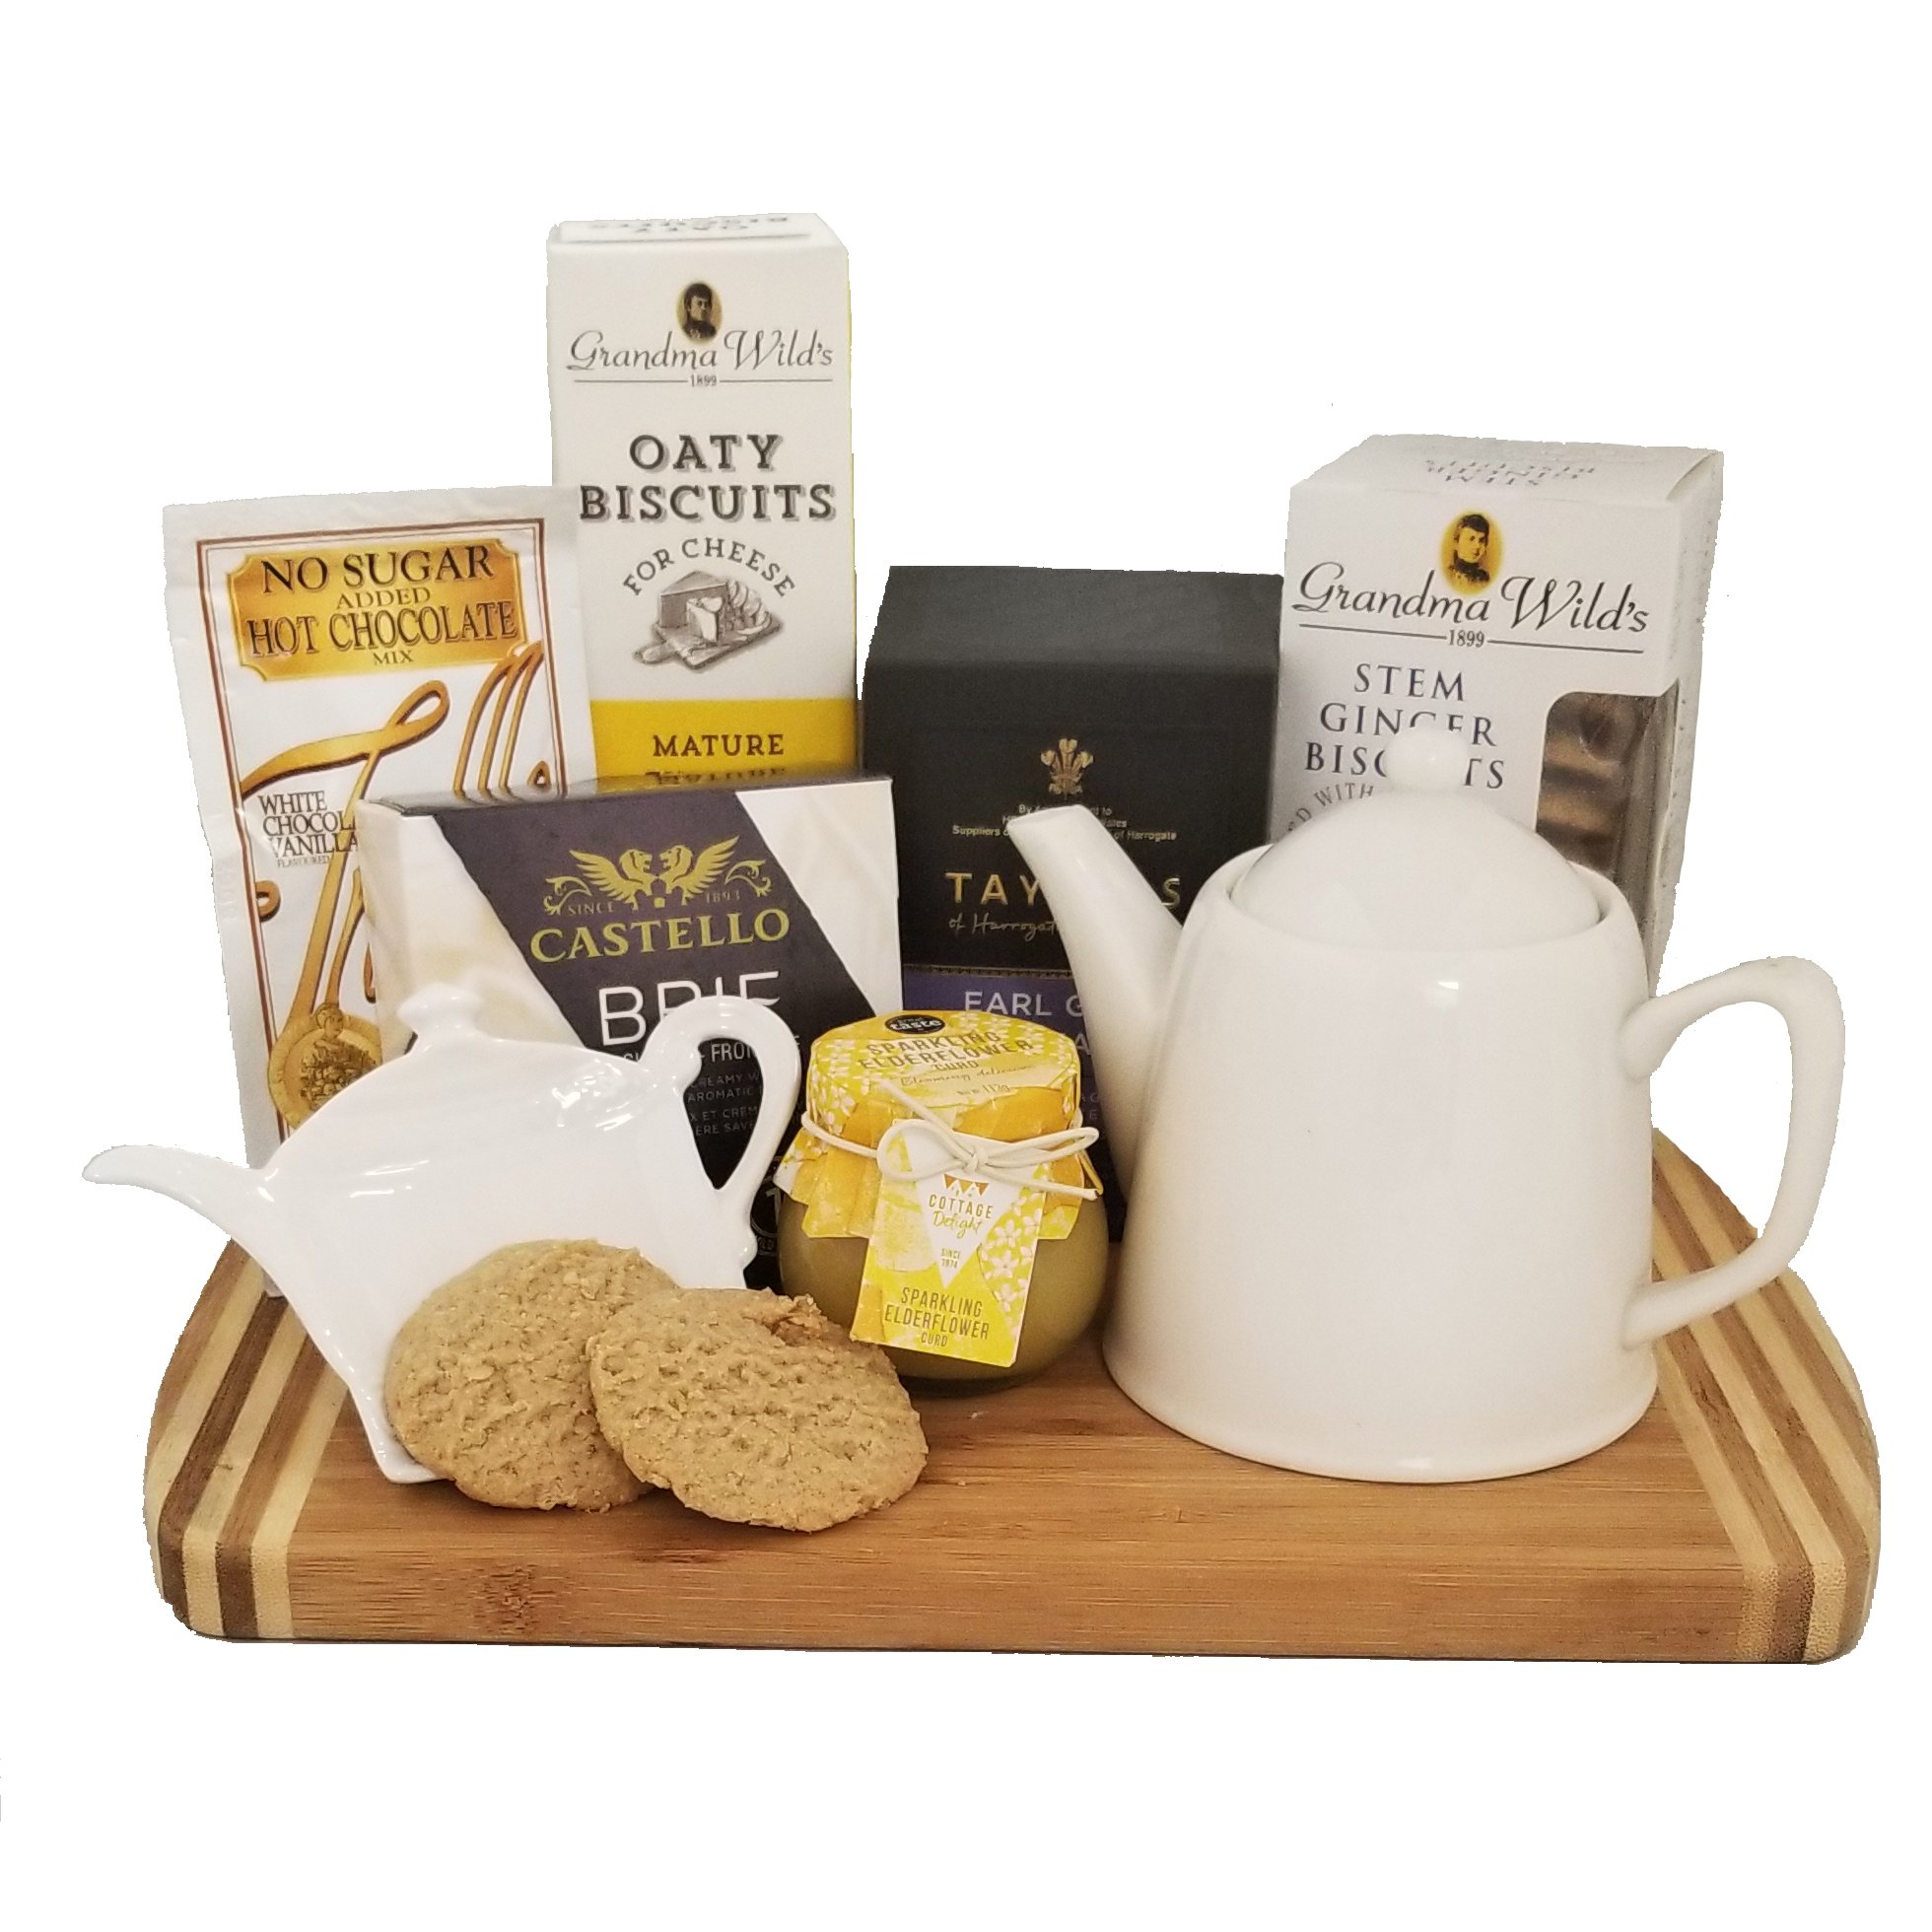 Morning Biscuits tea time gift basket